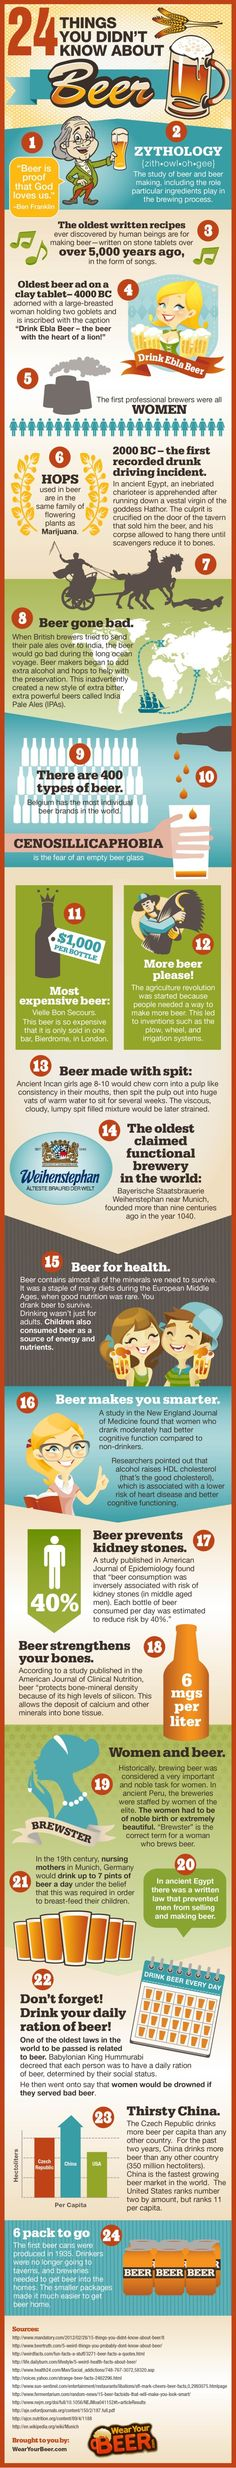 24-things-you-didnt-know-about-beer